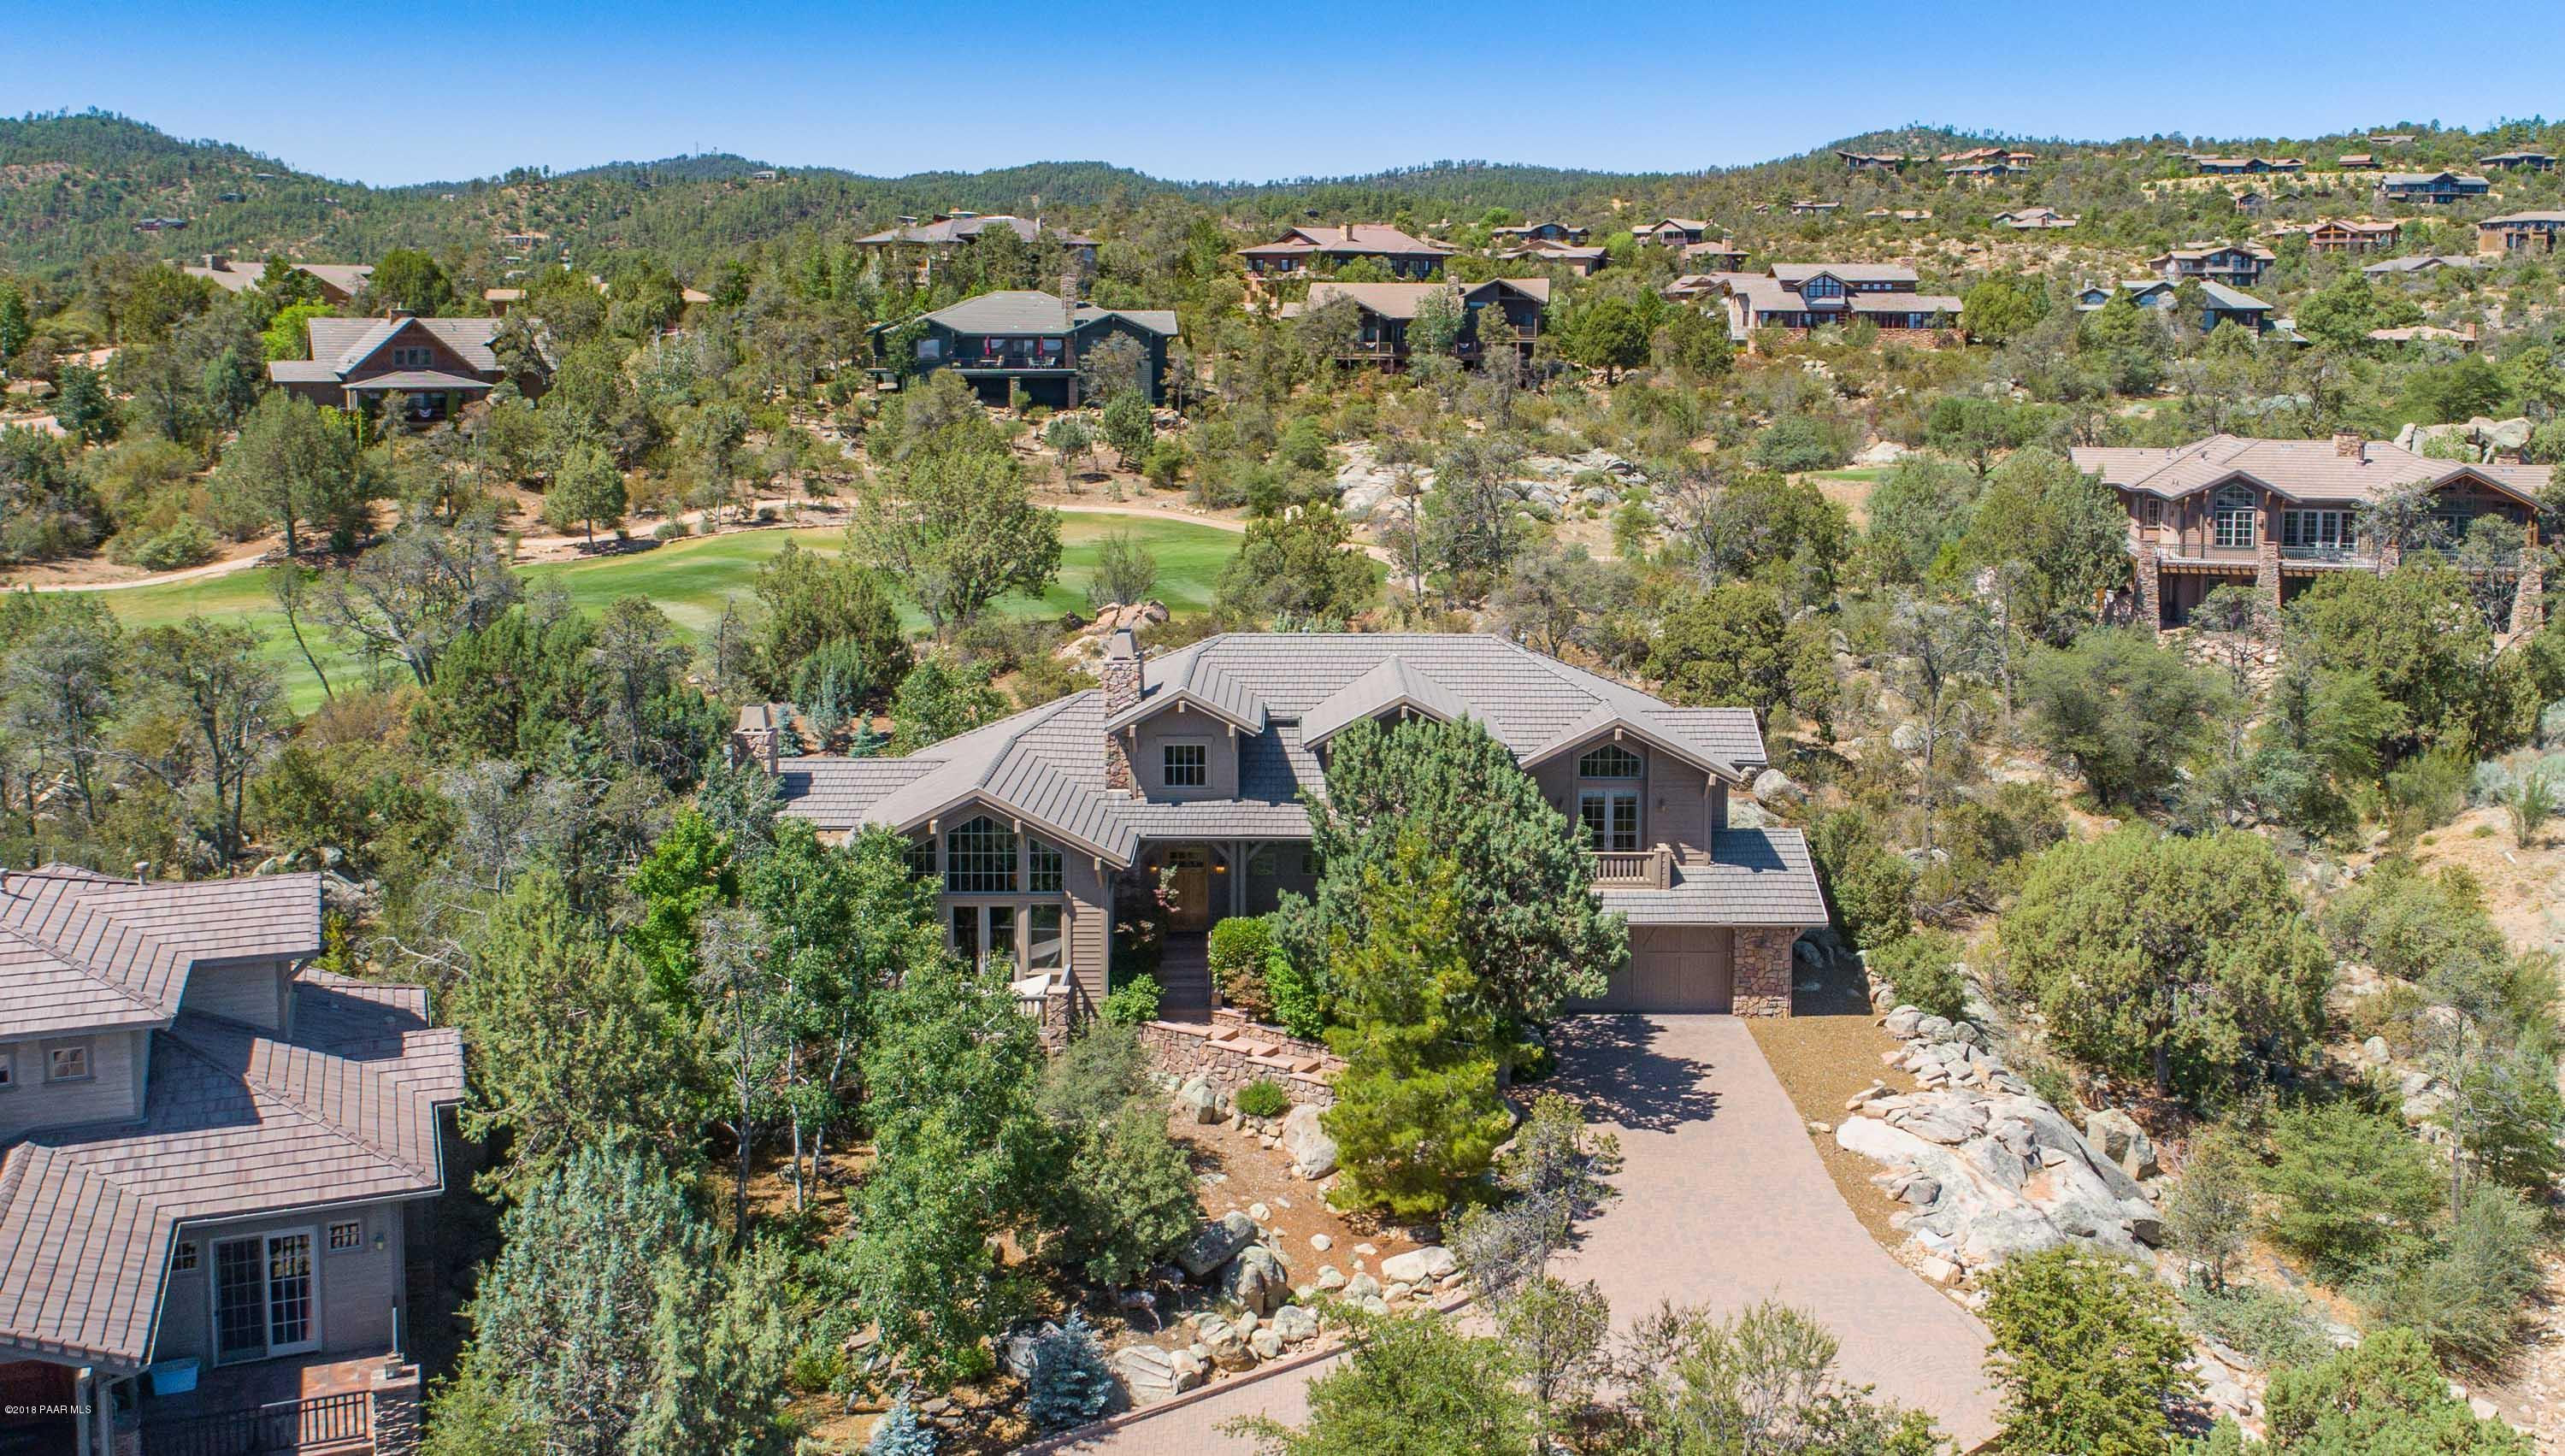 Photo of 2031 Golf Club, Prescott, AZ 86303